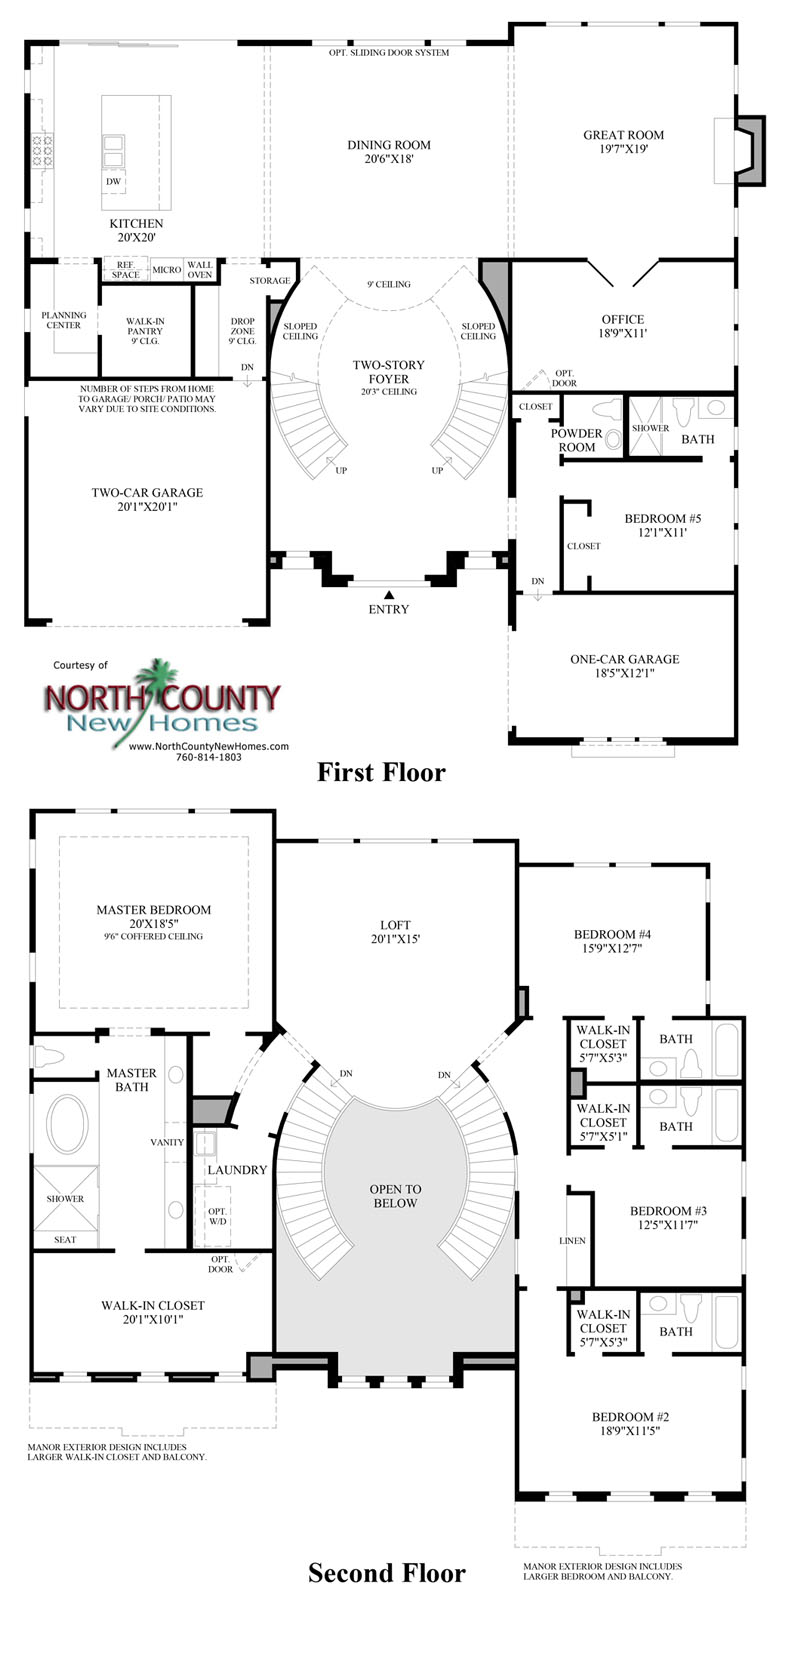 Pacific Ranch Townhomes Floor Plans on ranch mansion floor plans, ranch luxury floor plans, ranch basement floor plans, ranch cabin floor plans, large open ranch plans, open-concept ranch house plans, ranch duplex floor plans, ranch floor plans one-bedroom, 5 bedroom ranch floor plans, ranch house floor plans, ranch 2 bedroom floor plans, 3-bedroom ranch house plans, ranch cape cod floor plans, large ranch floor plans, ranch floor plans with 3 car garage, open ranch floor plans, ranch lodge floor plans,